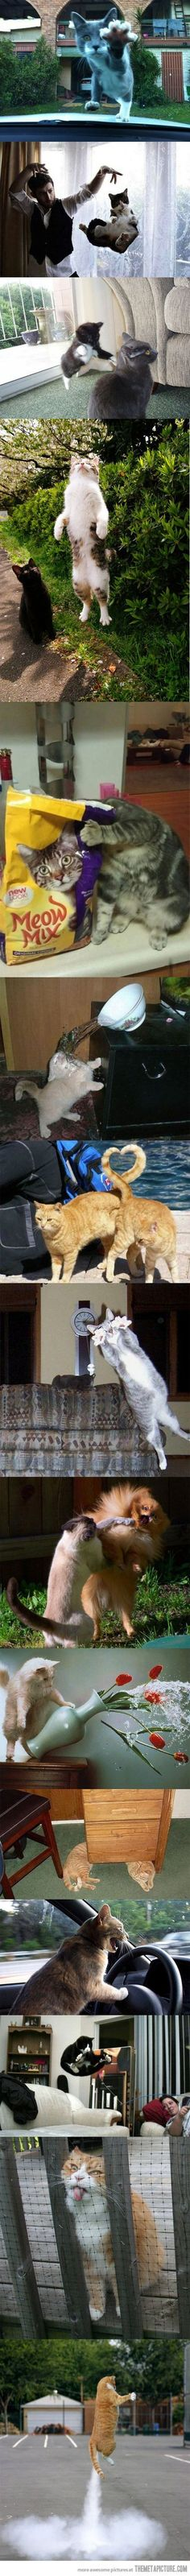 15 perfectly timed cat photos... - The Meta Picture